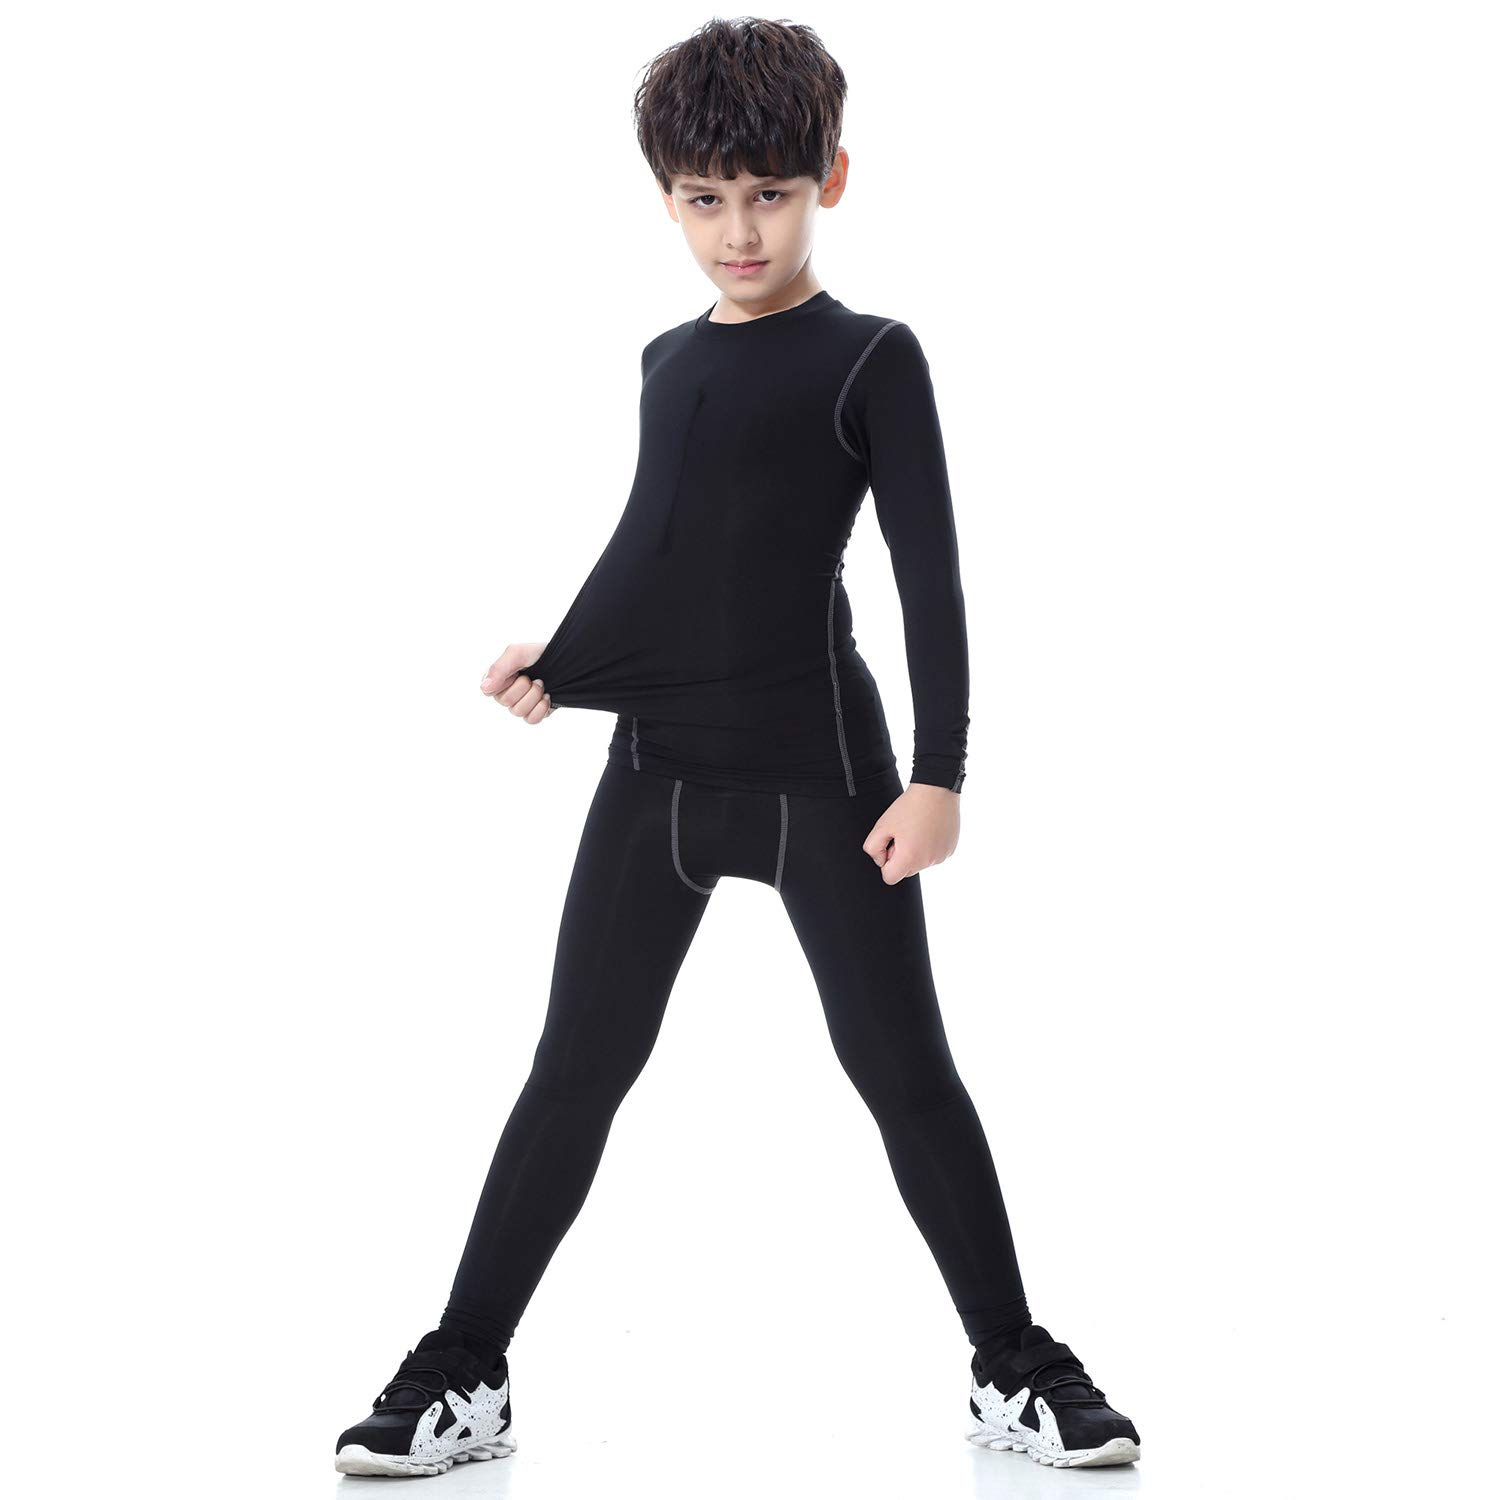 Witkey Boys Thermal Underwear Set, 1/2 Pcs Athletic Compression Shirts Base Layer Long Johns for Boys by Witkey